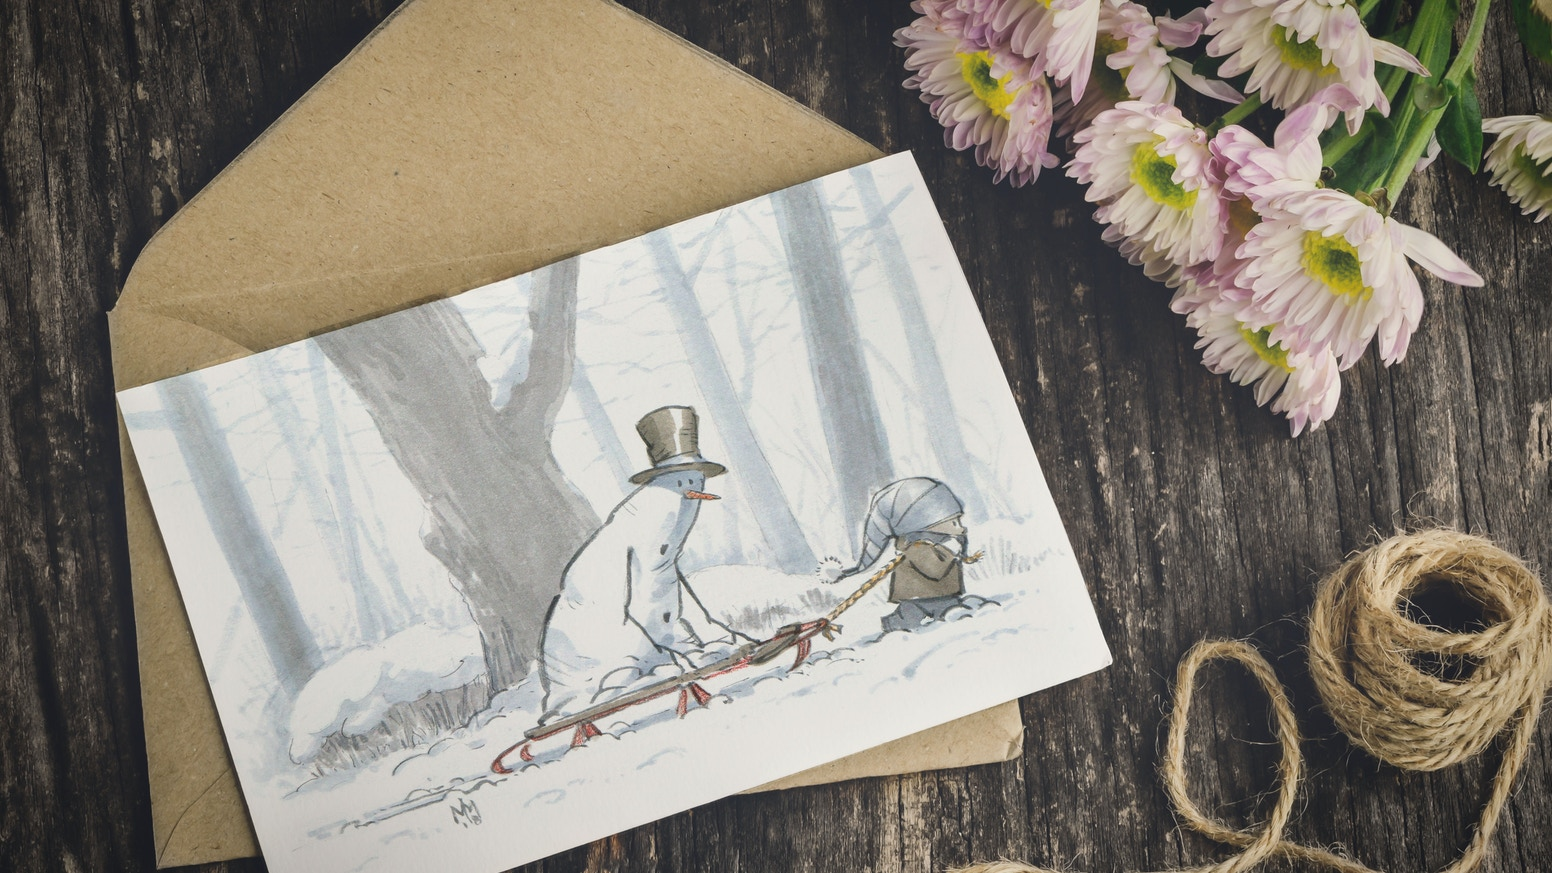 A limited-run of the 2018 collection of 10 whimsical snowman themed greeting cards featuring all-new illustrations by Mark Molchan